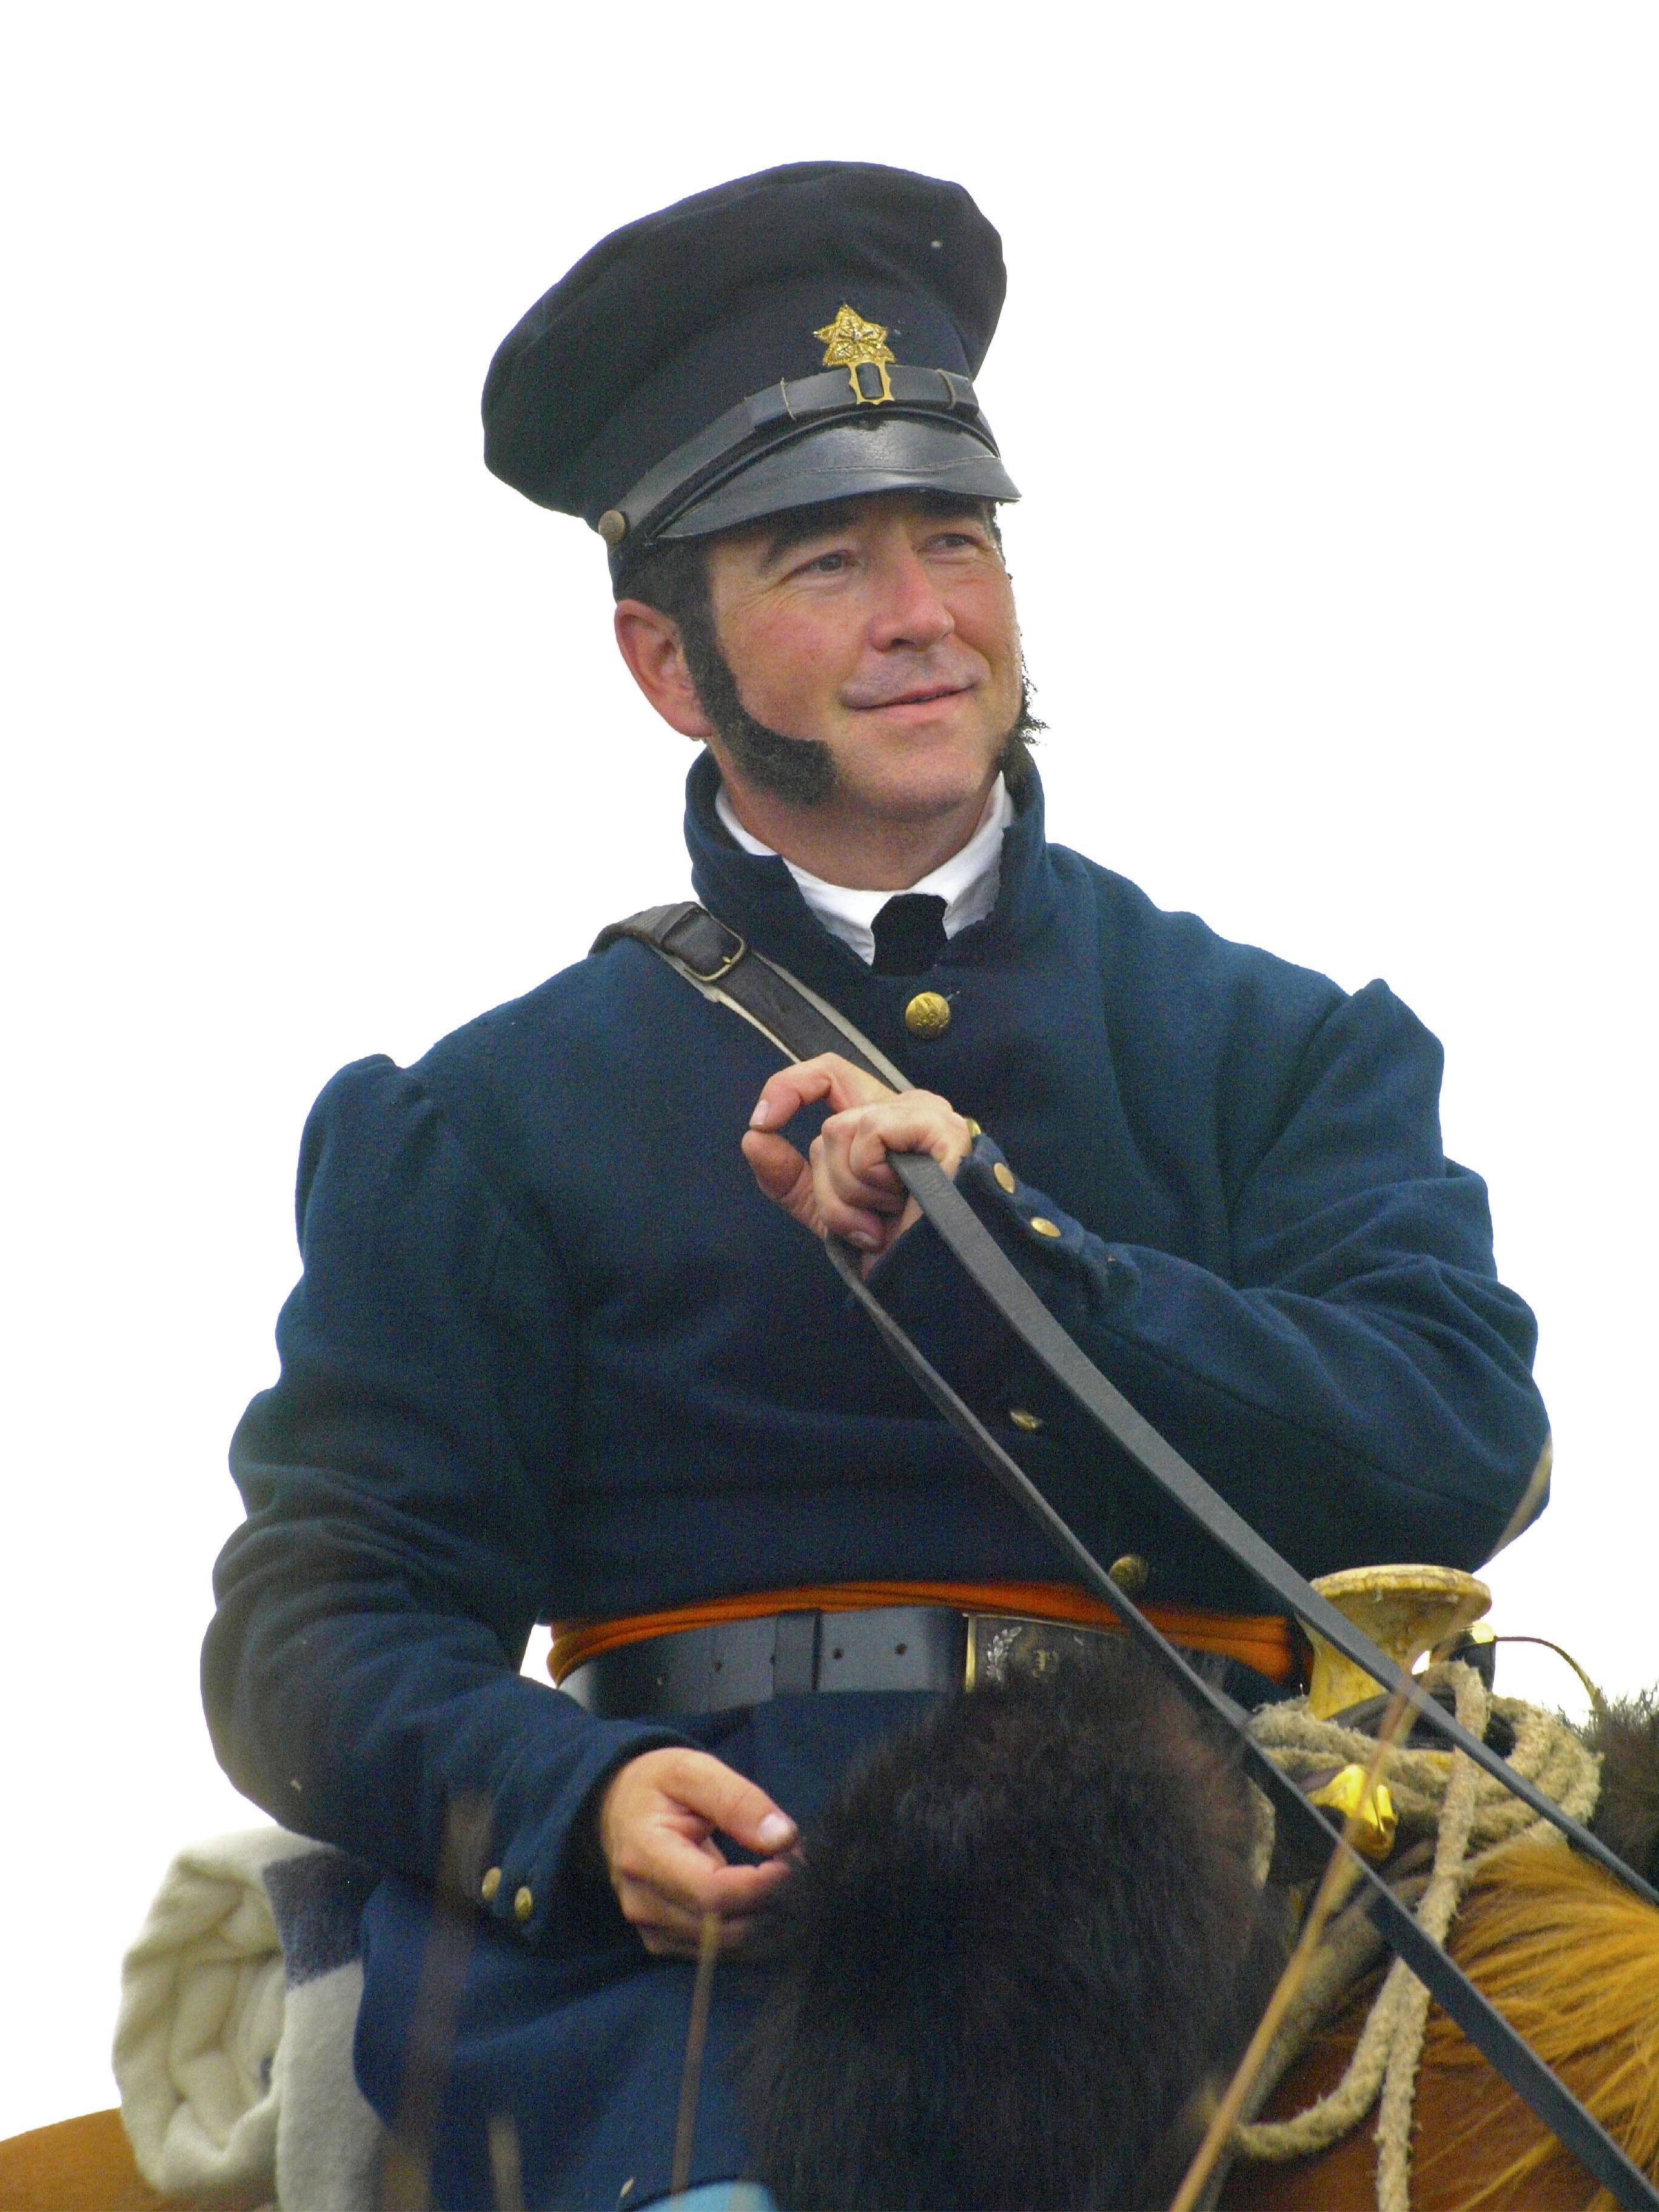 Reenactor Bill Jordan portraying Captain Benjamin Moore